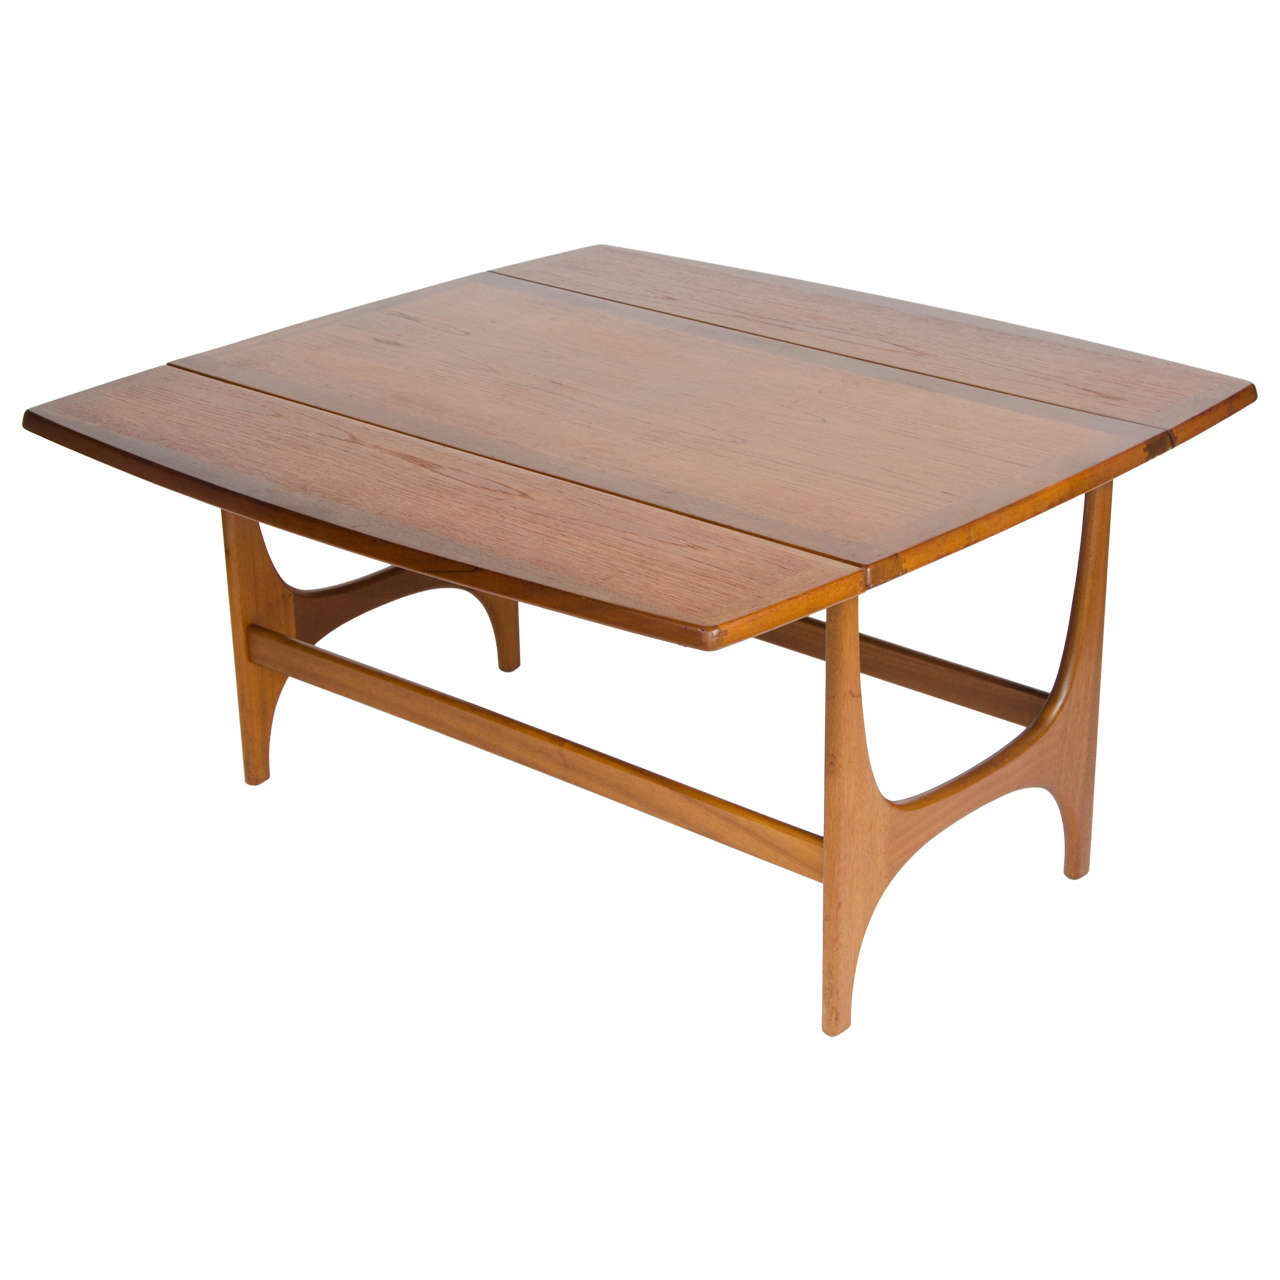 British 1960s stonehill coffee table at 1stdibs for Center coffee table furniture